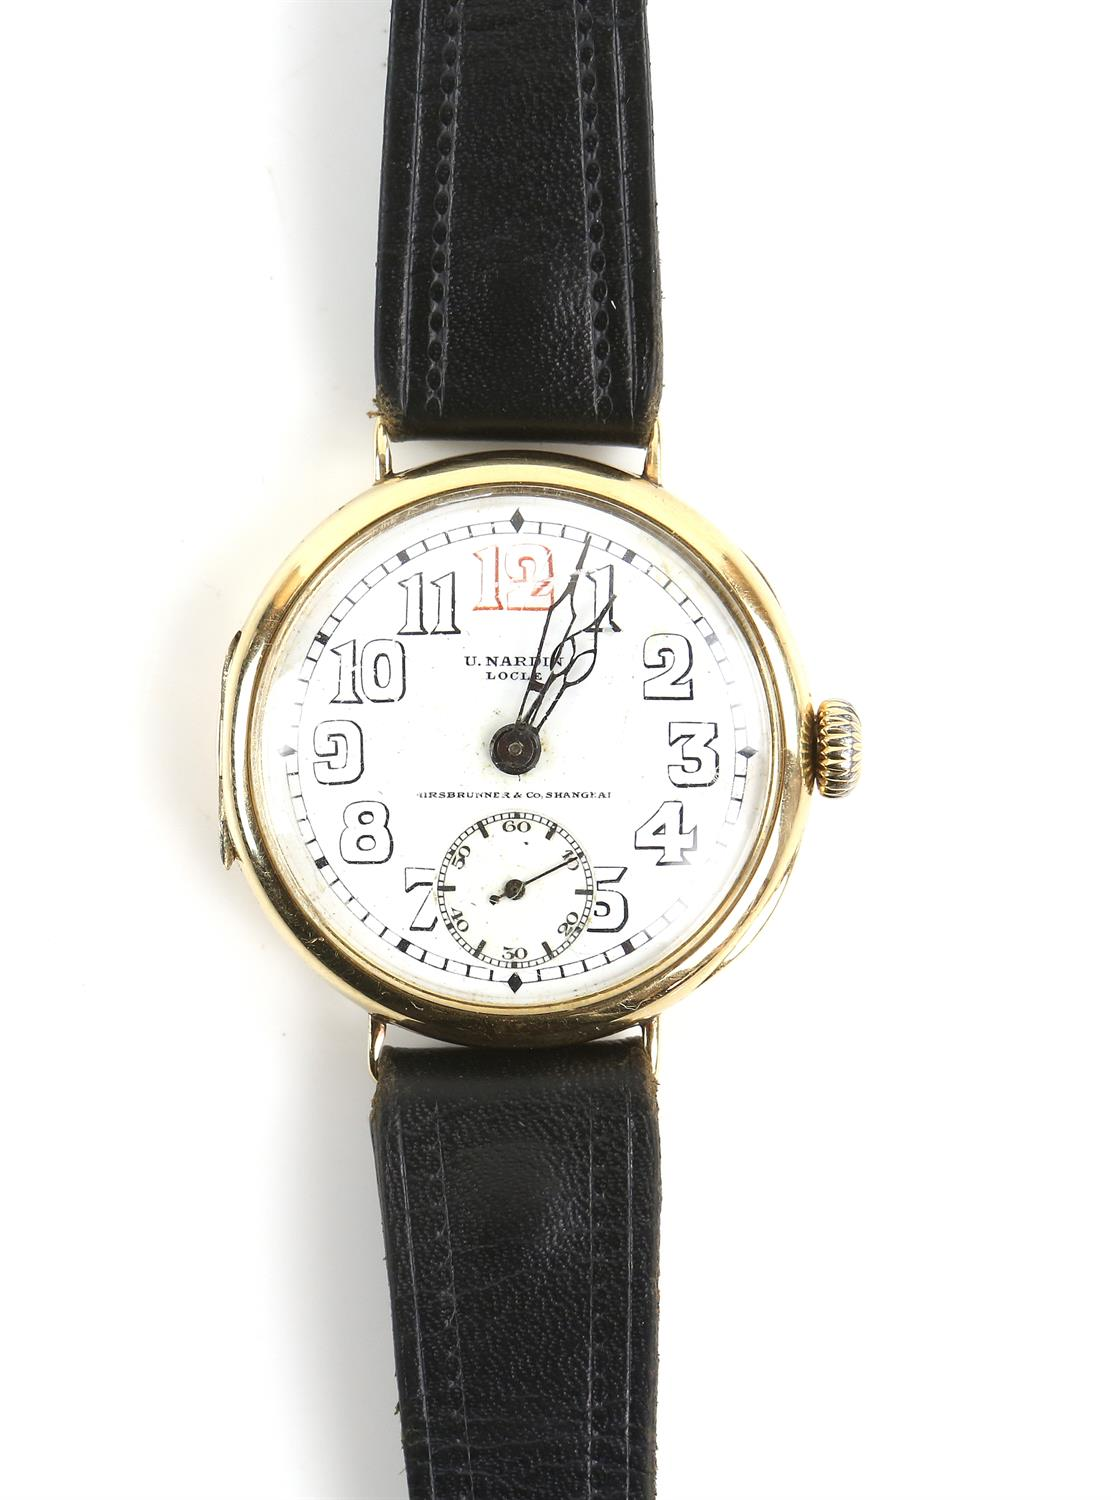 Ulysee Nardin, a Gentleman's gold wristwatch in circular case, the signed white enamel dial with